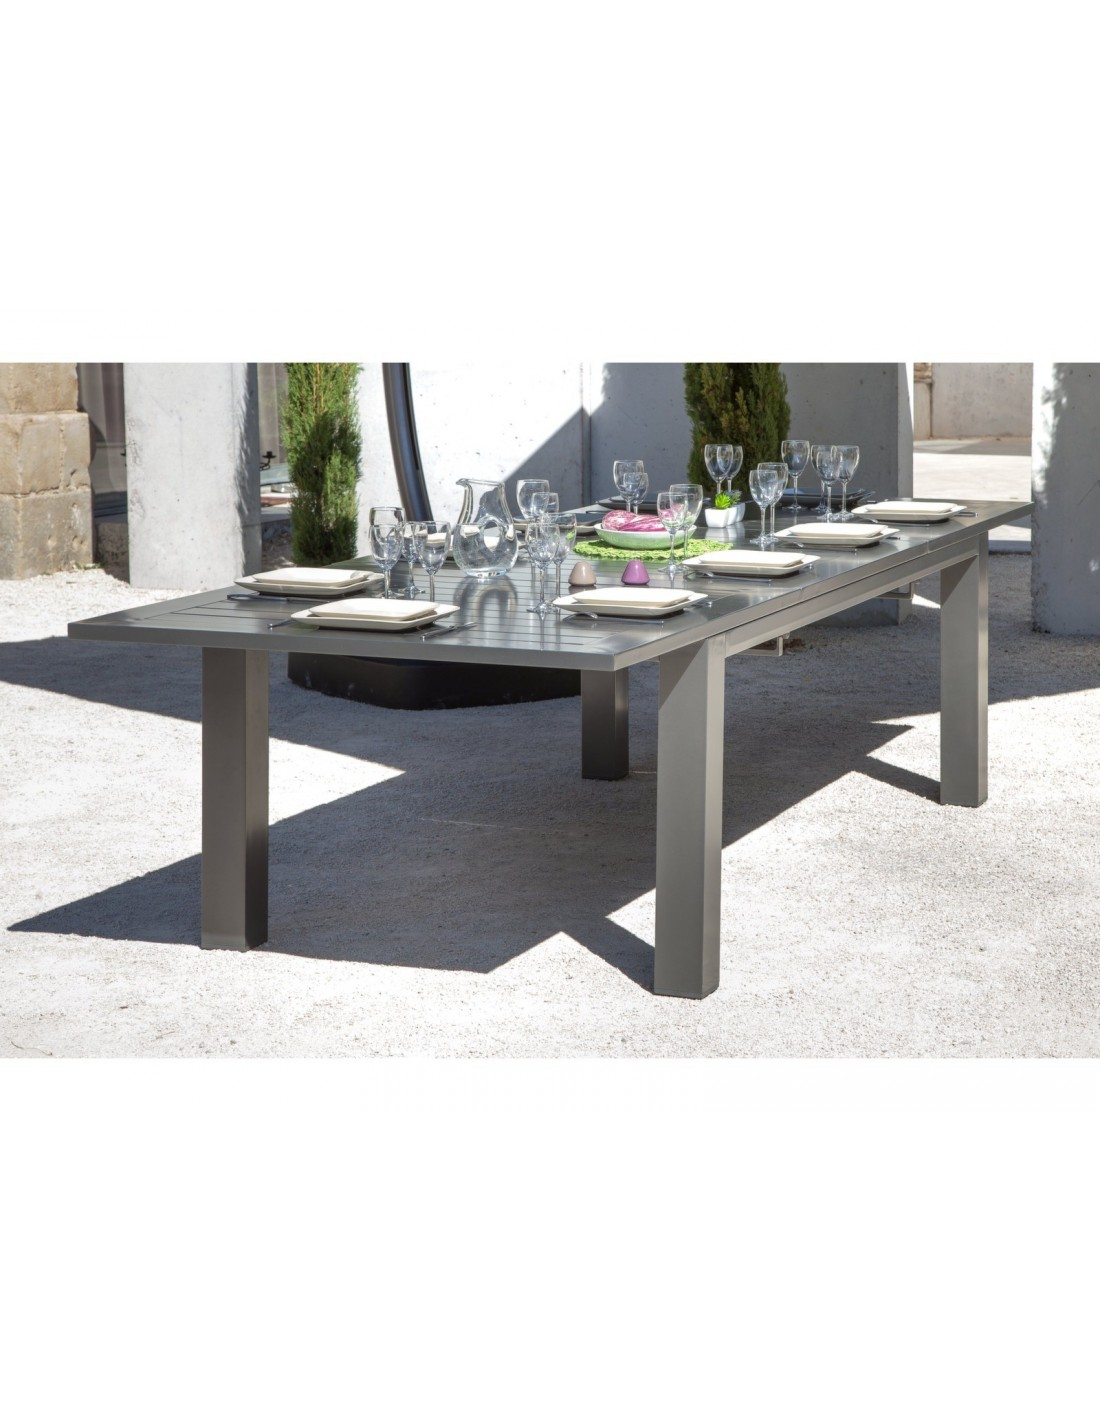 Table aurore 12 personnes aluminium caf 214 311 x 110 for Table exterieur 12 personnes